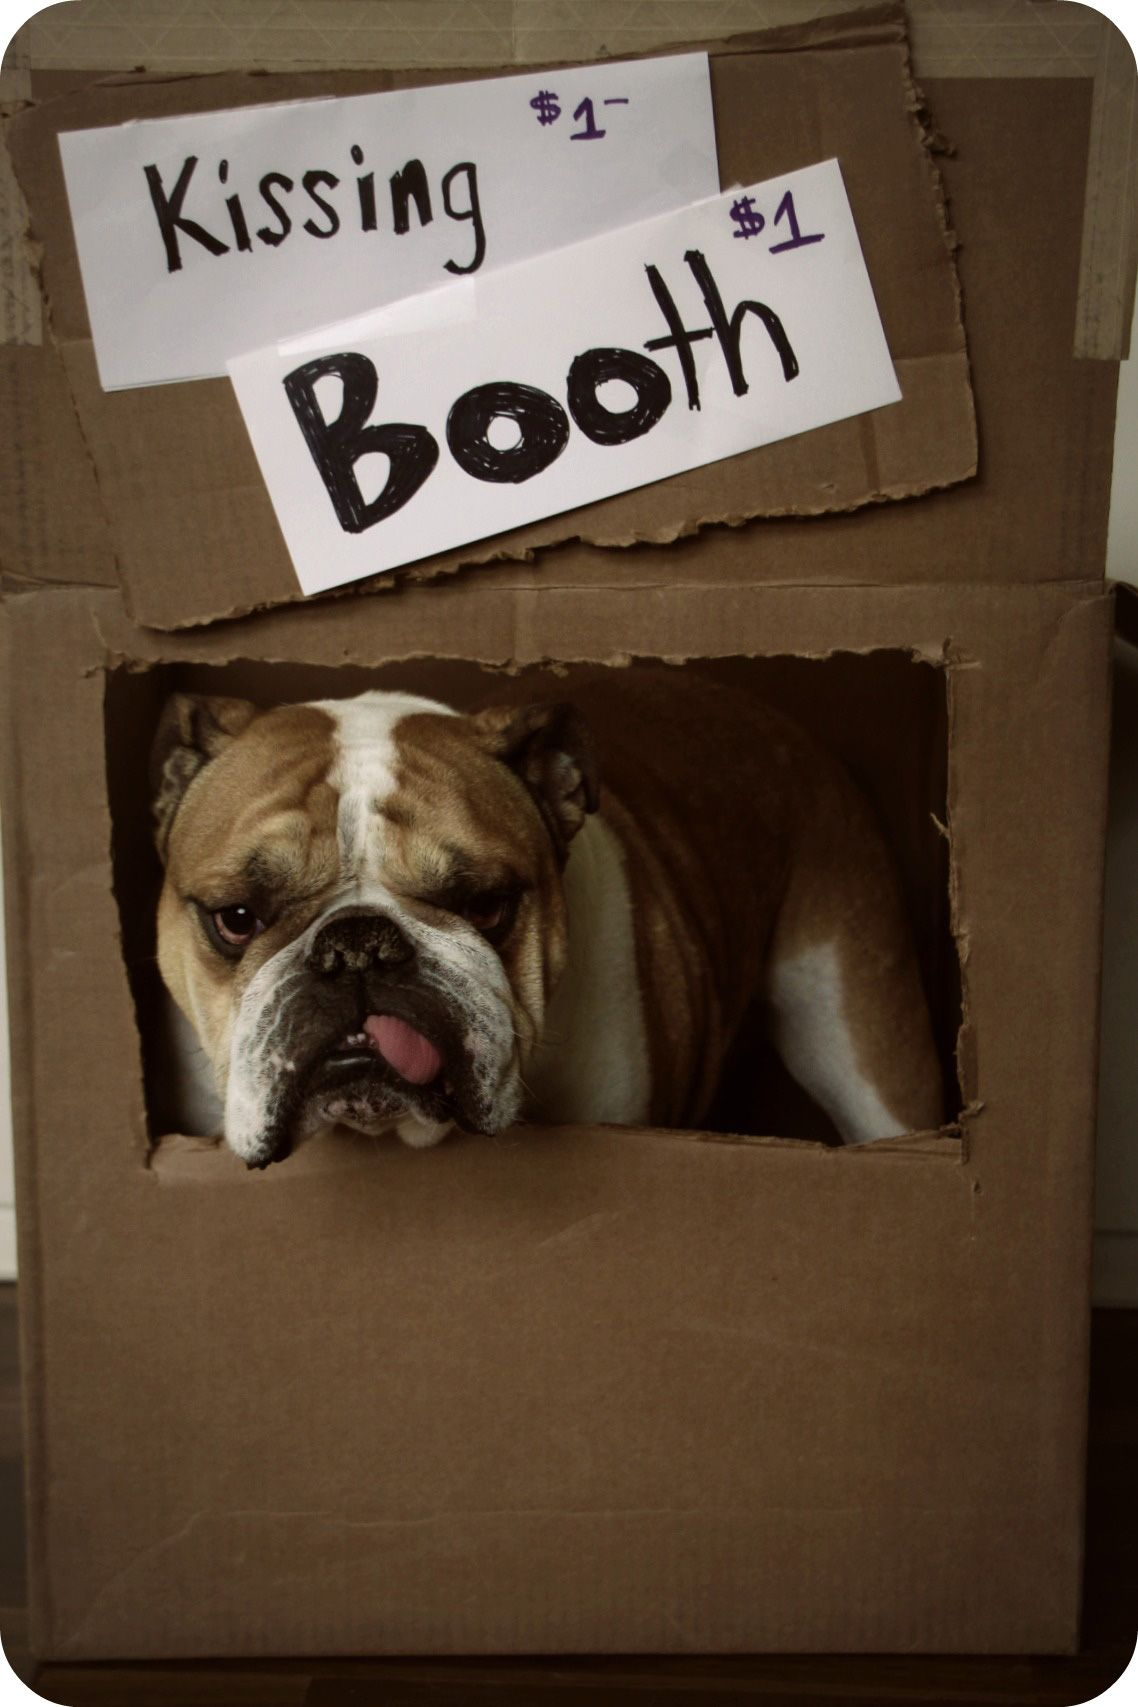 Set up a doggy kissing booth! It's hard to turn down a